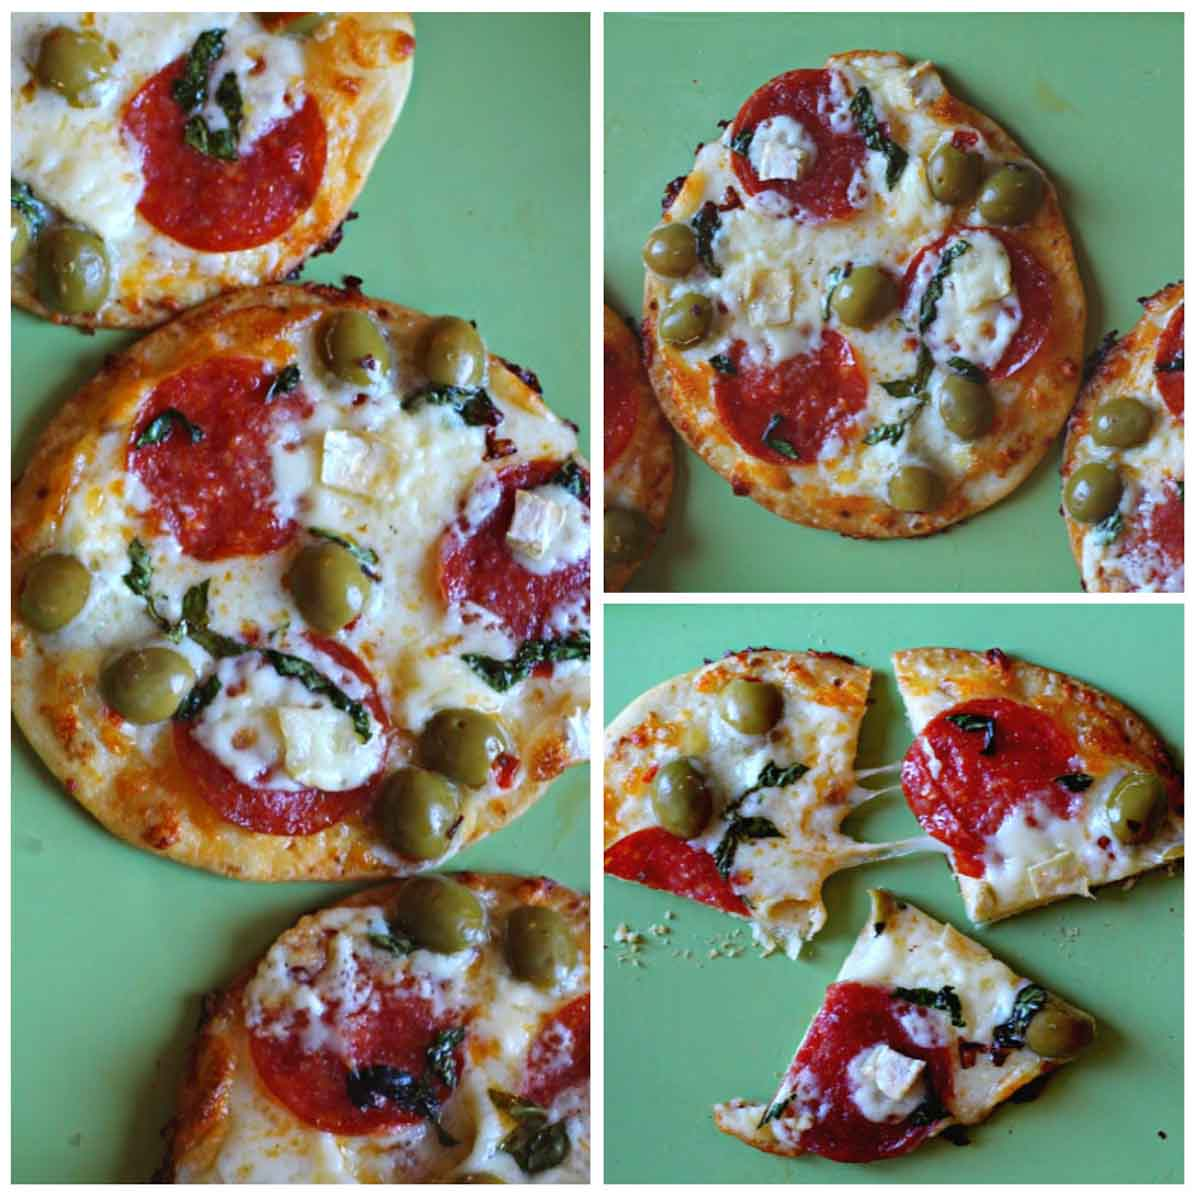 Brie cheese, green olive pizza on flour tortillas